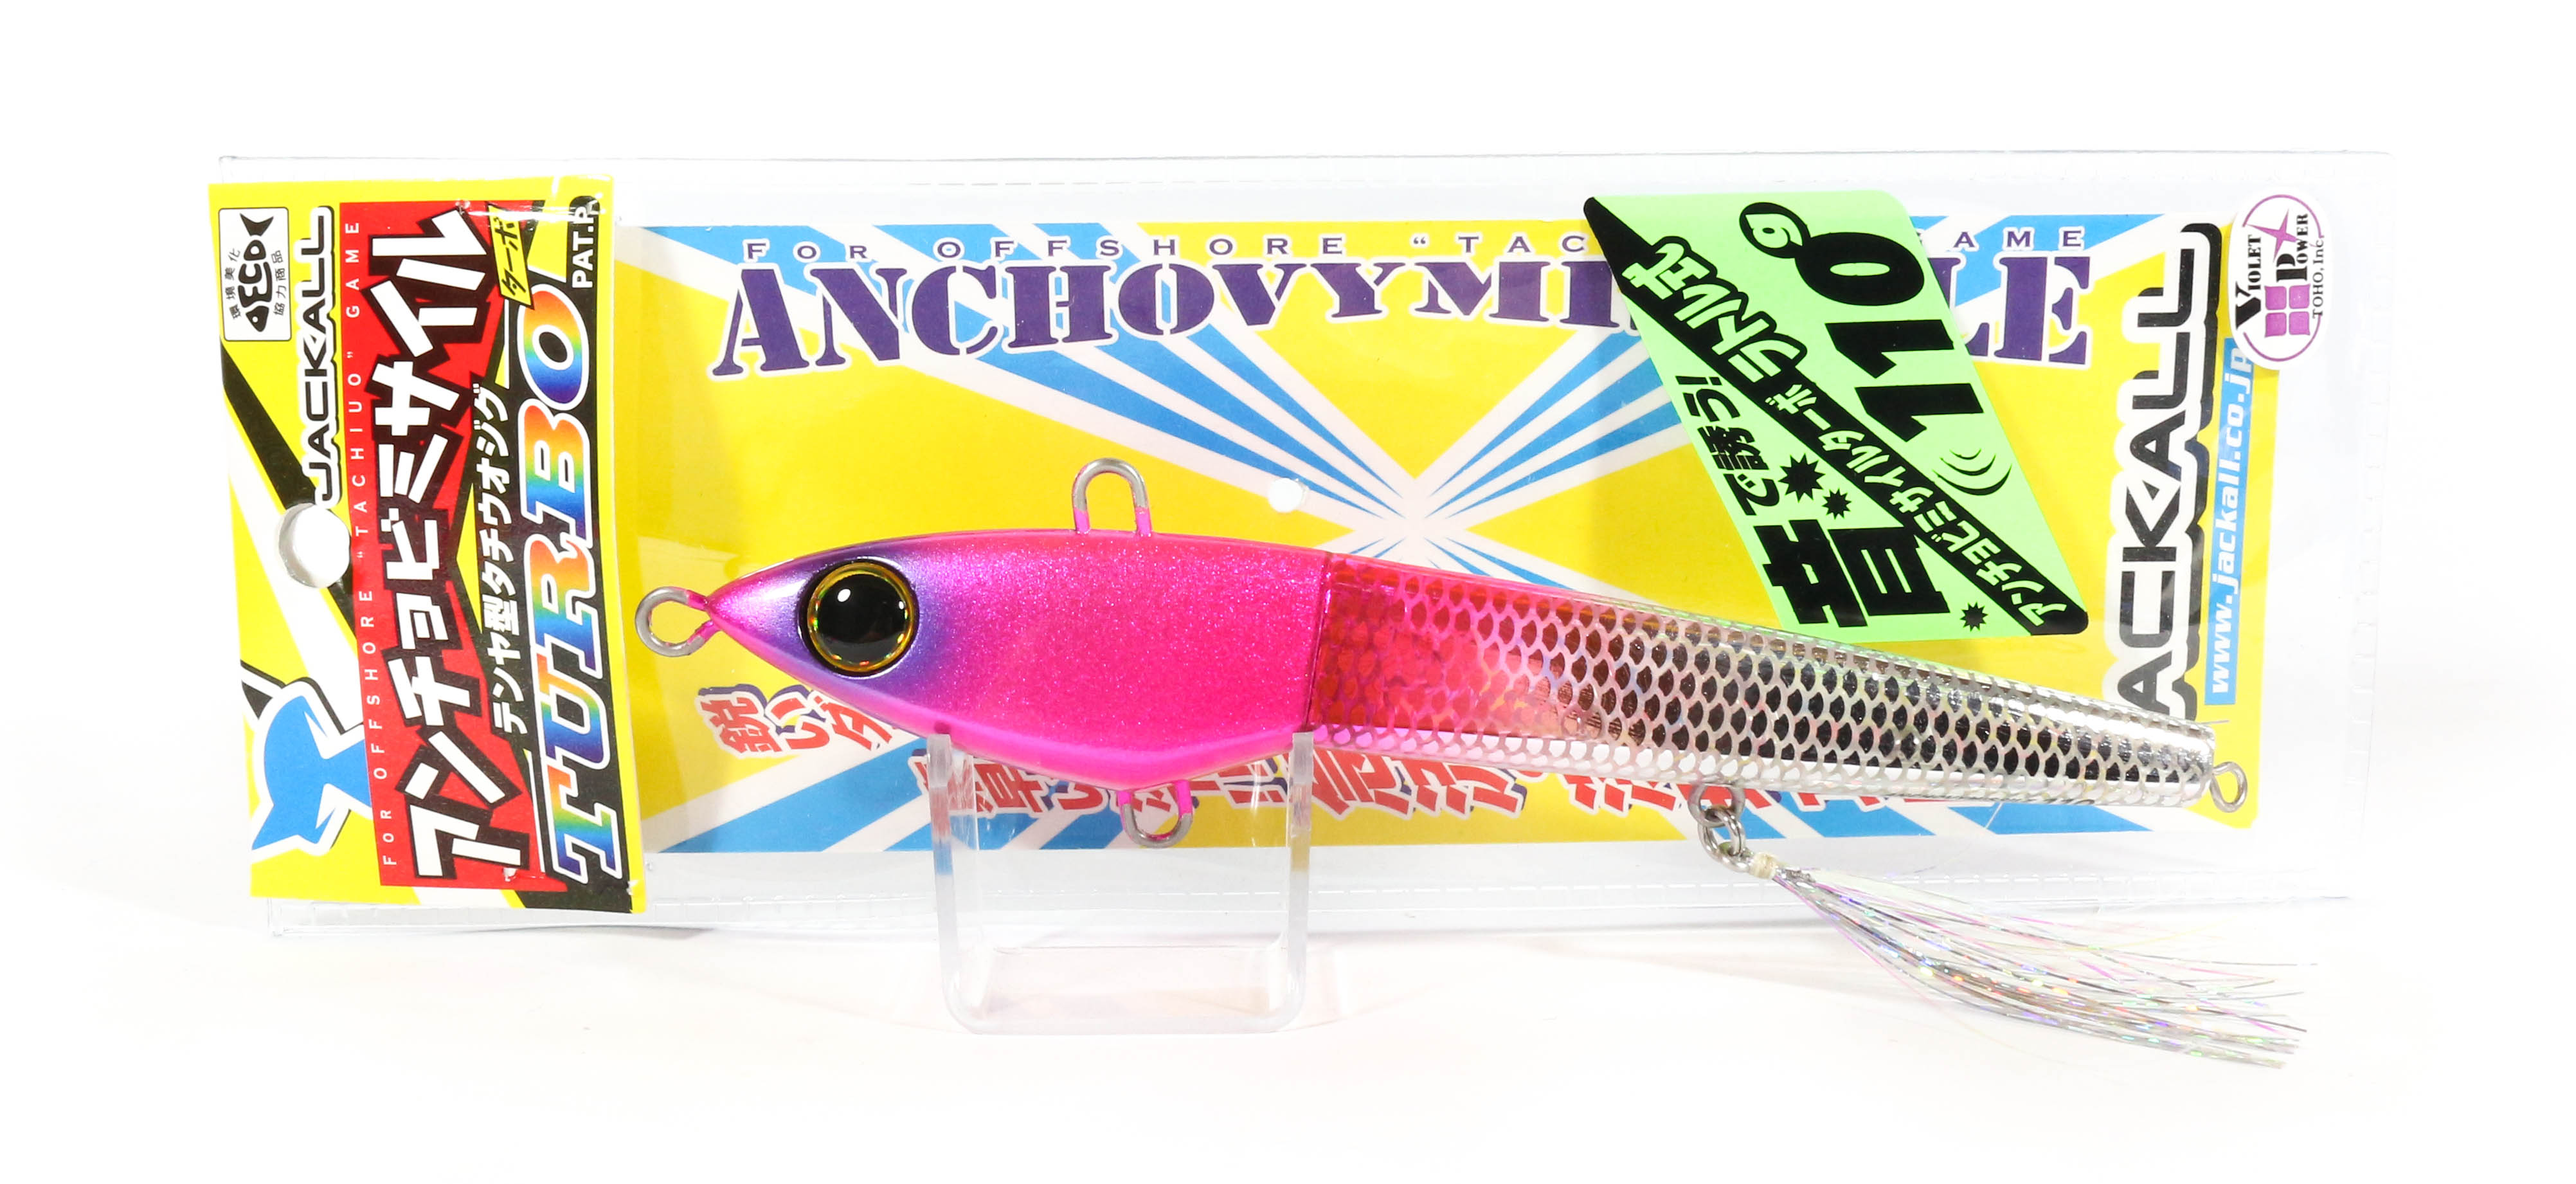 Sale Jackall Anchovy Missile Turbo RattleShiki Jig 110 grams Pink Silver (5467)